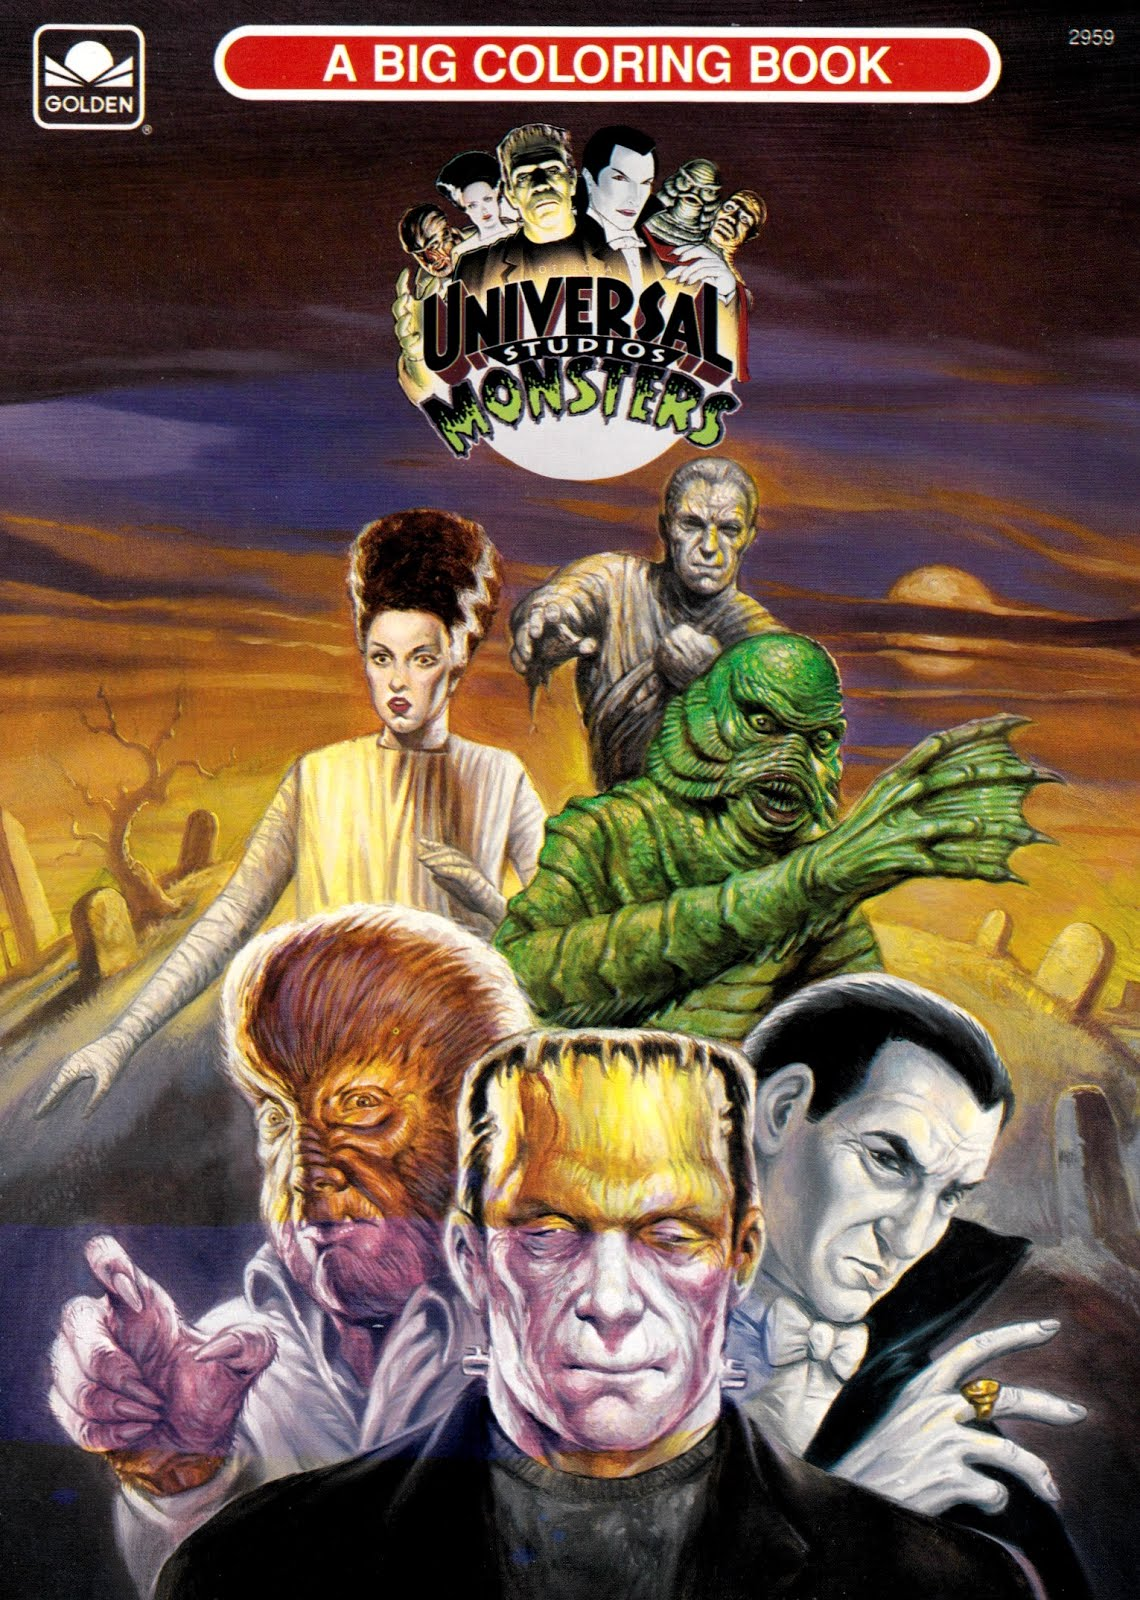 And Everything Else Too Universal Studios Monsters Big Coloring